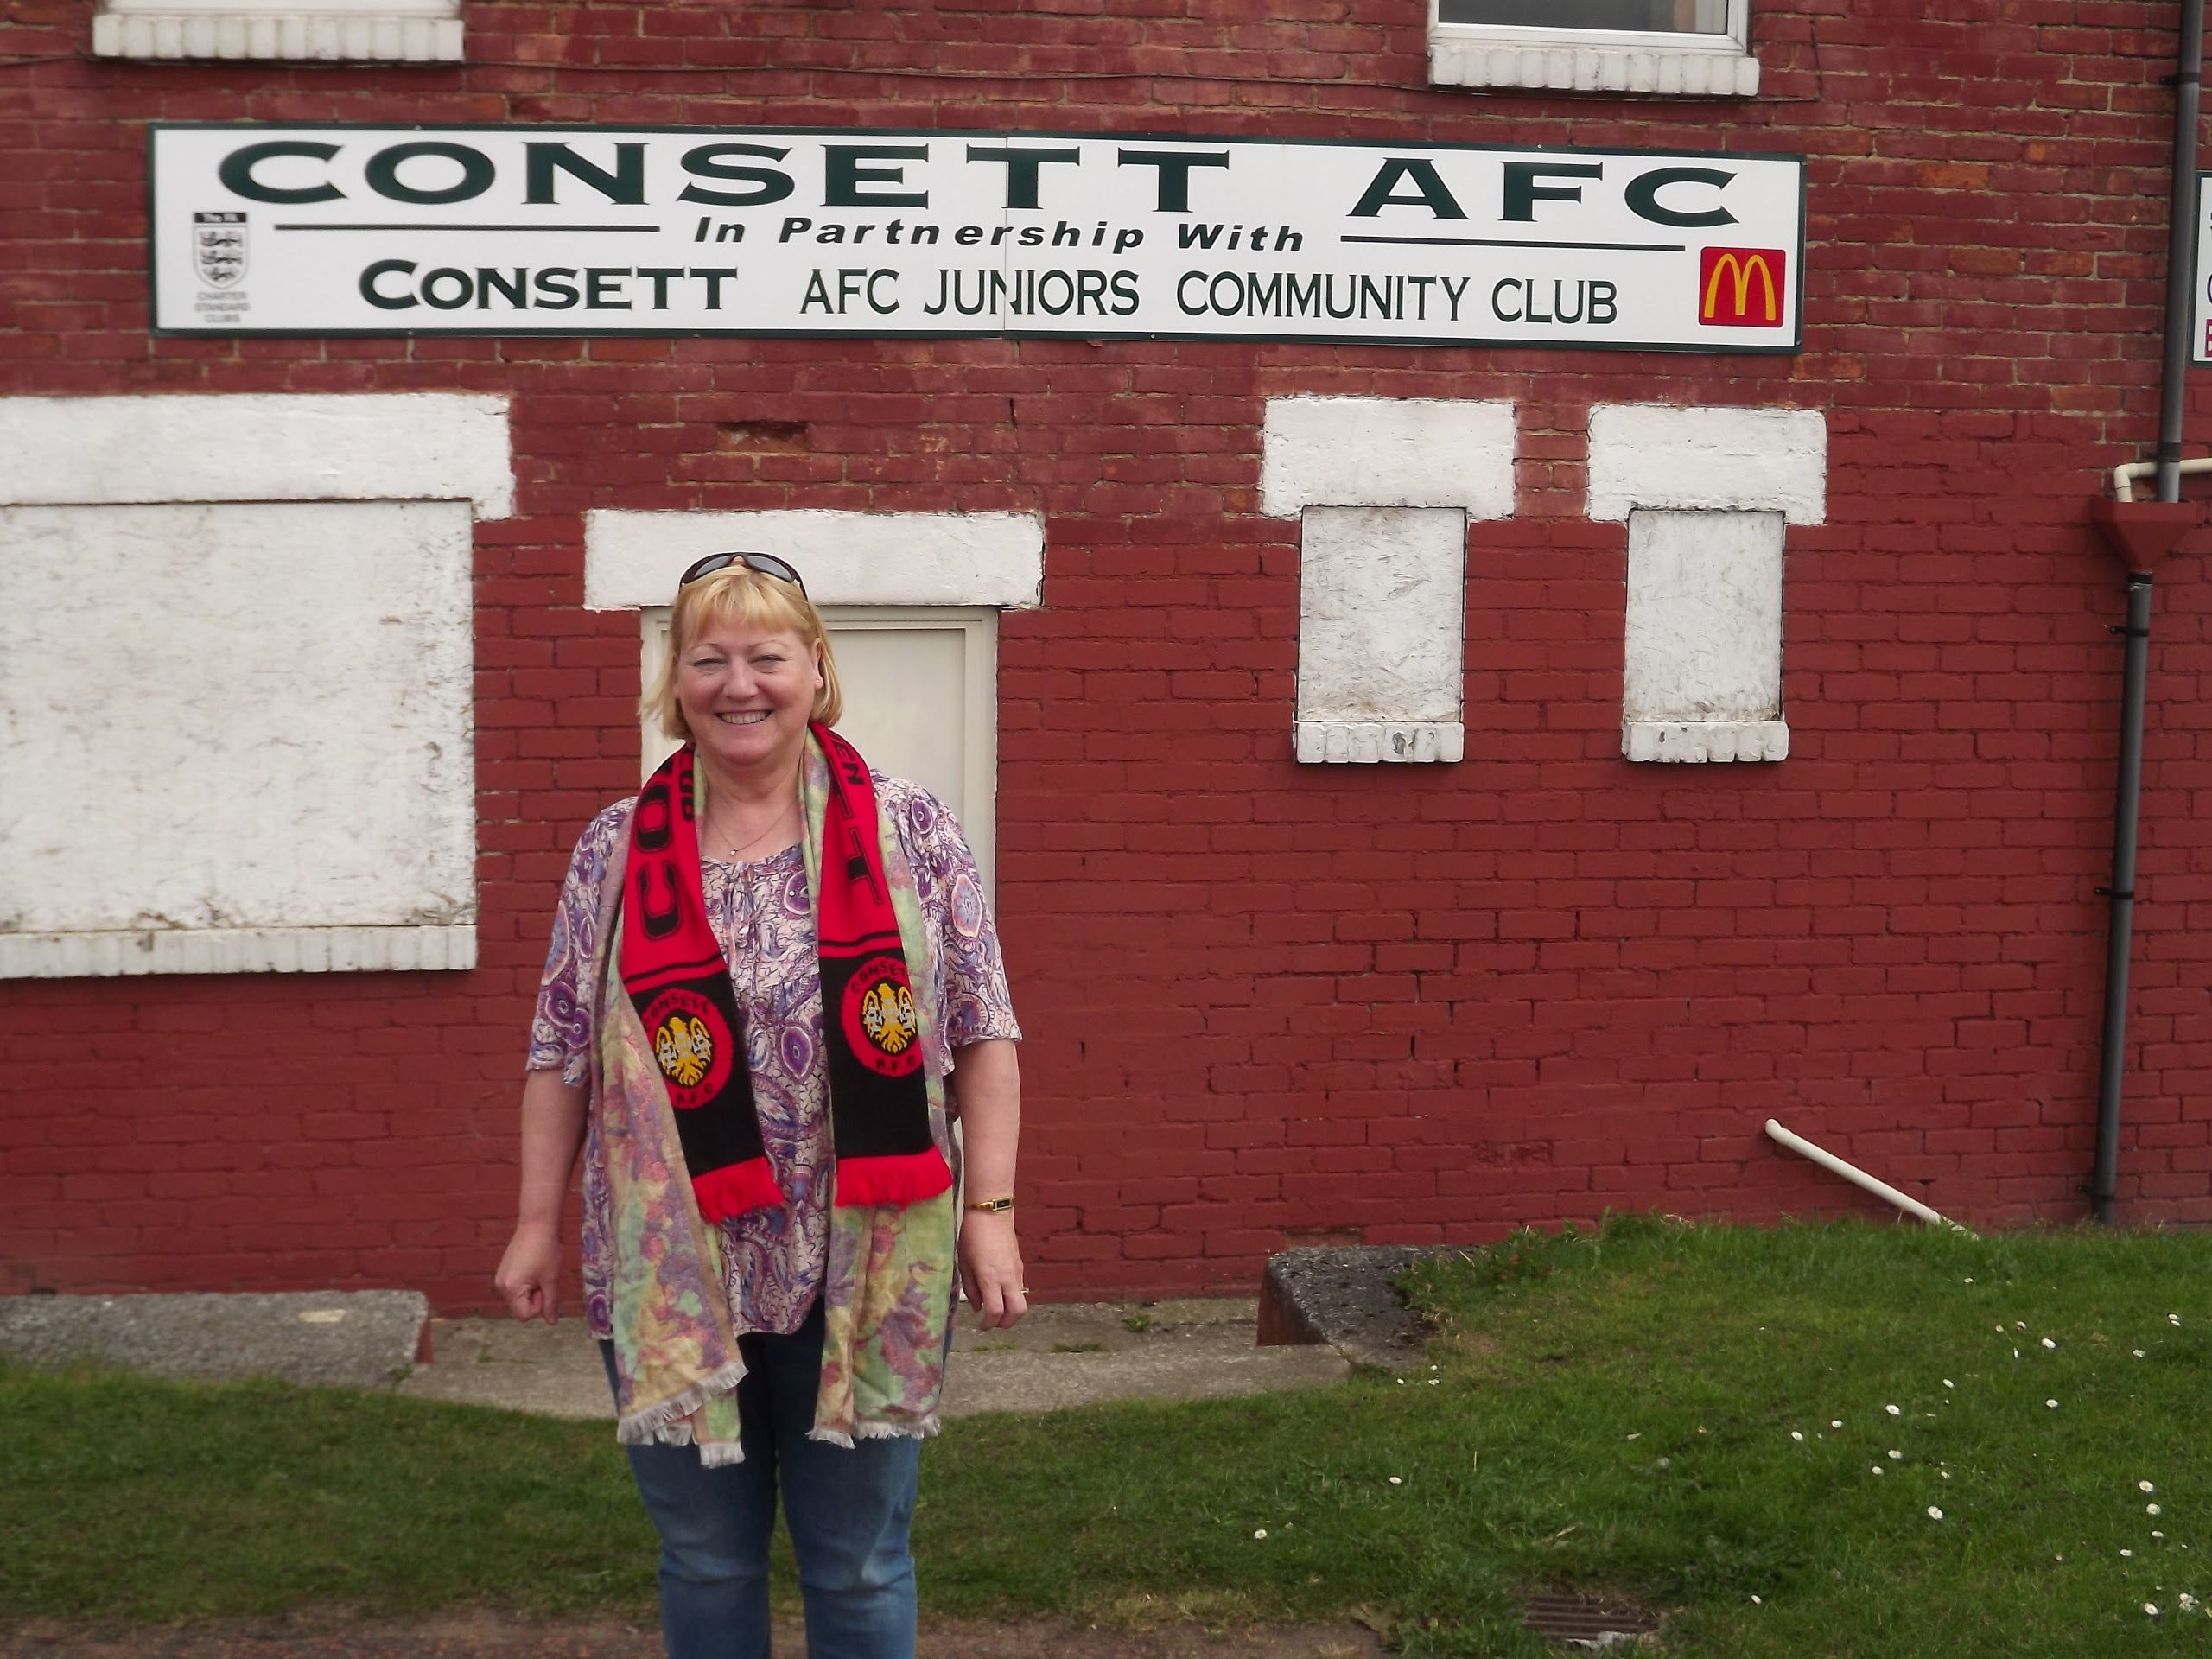 Pat Glass at Consett AFC